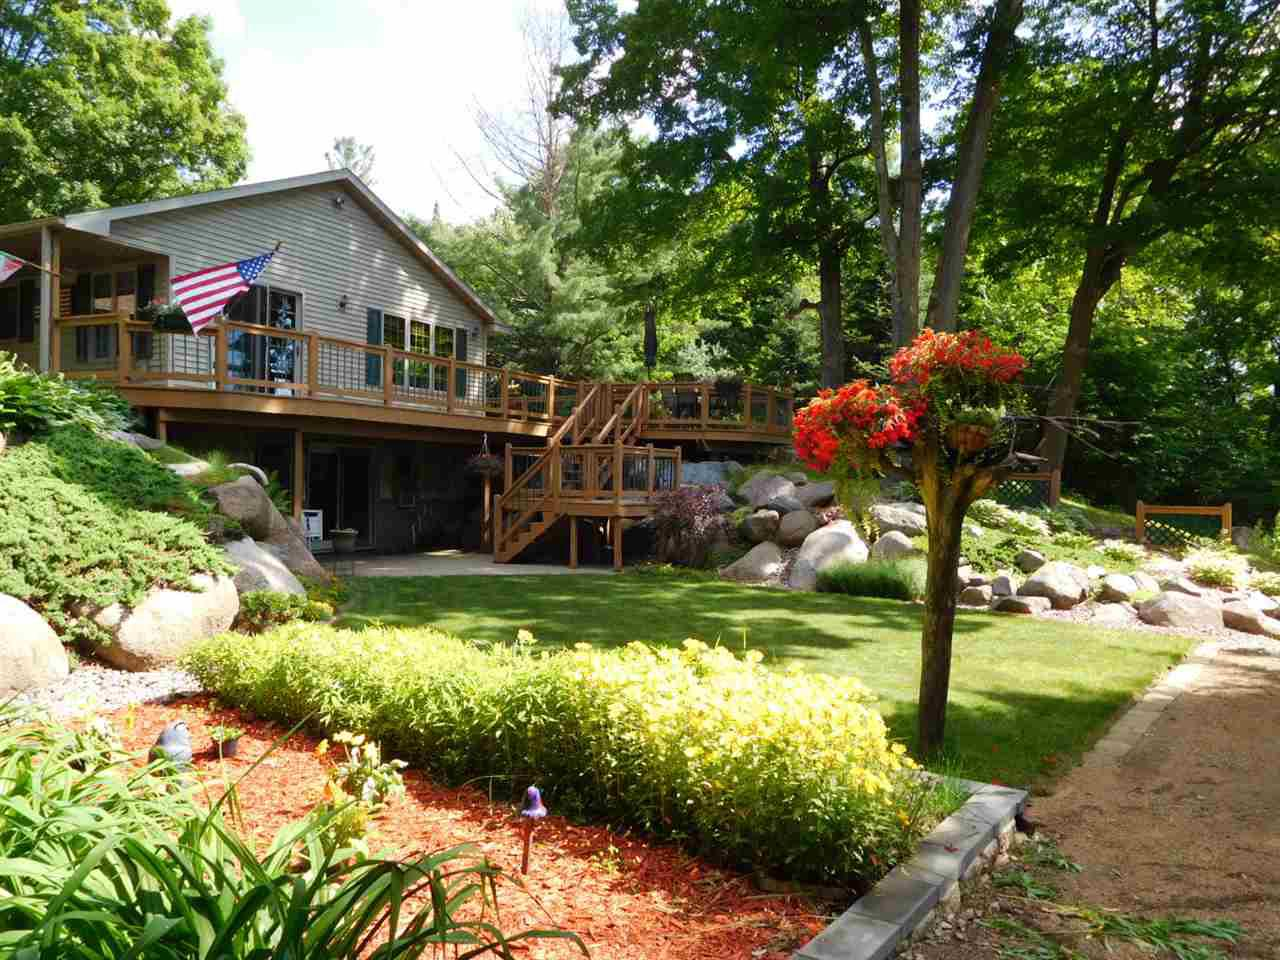 Are you looking for a very private setting with a beautiful wooded lot and meticulously well maintained home and landscaped yard? Well you just found it. The attached garage is finished and insulated with its own heating unit that is connected to the outdoor wood burner. Matter of fact the wood burner heats the home as well if you want to save on fuel costs. Two bedrooms, master bath, a half bath, laundry area all on the main floor. The lower level walk-out has another bedroom and full bath. The open concept kitchen, dining and living room all flow nicely together. There is another detached garage for storage and to house your outdoor equipment. A lean-to between the garage and home is the perfect place for your summer time grilling or just to relax in the shade. This is another move-in ready one owner home